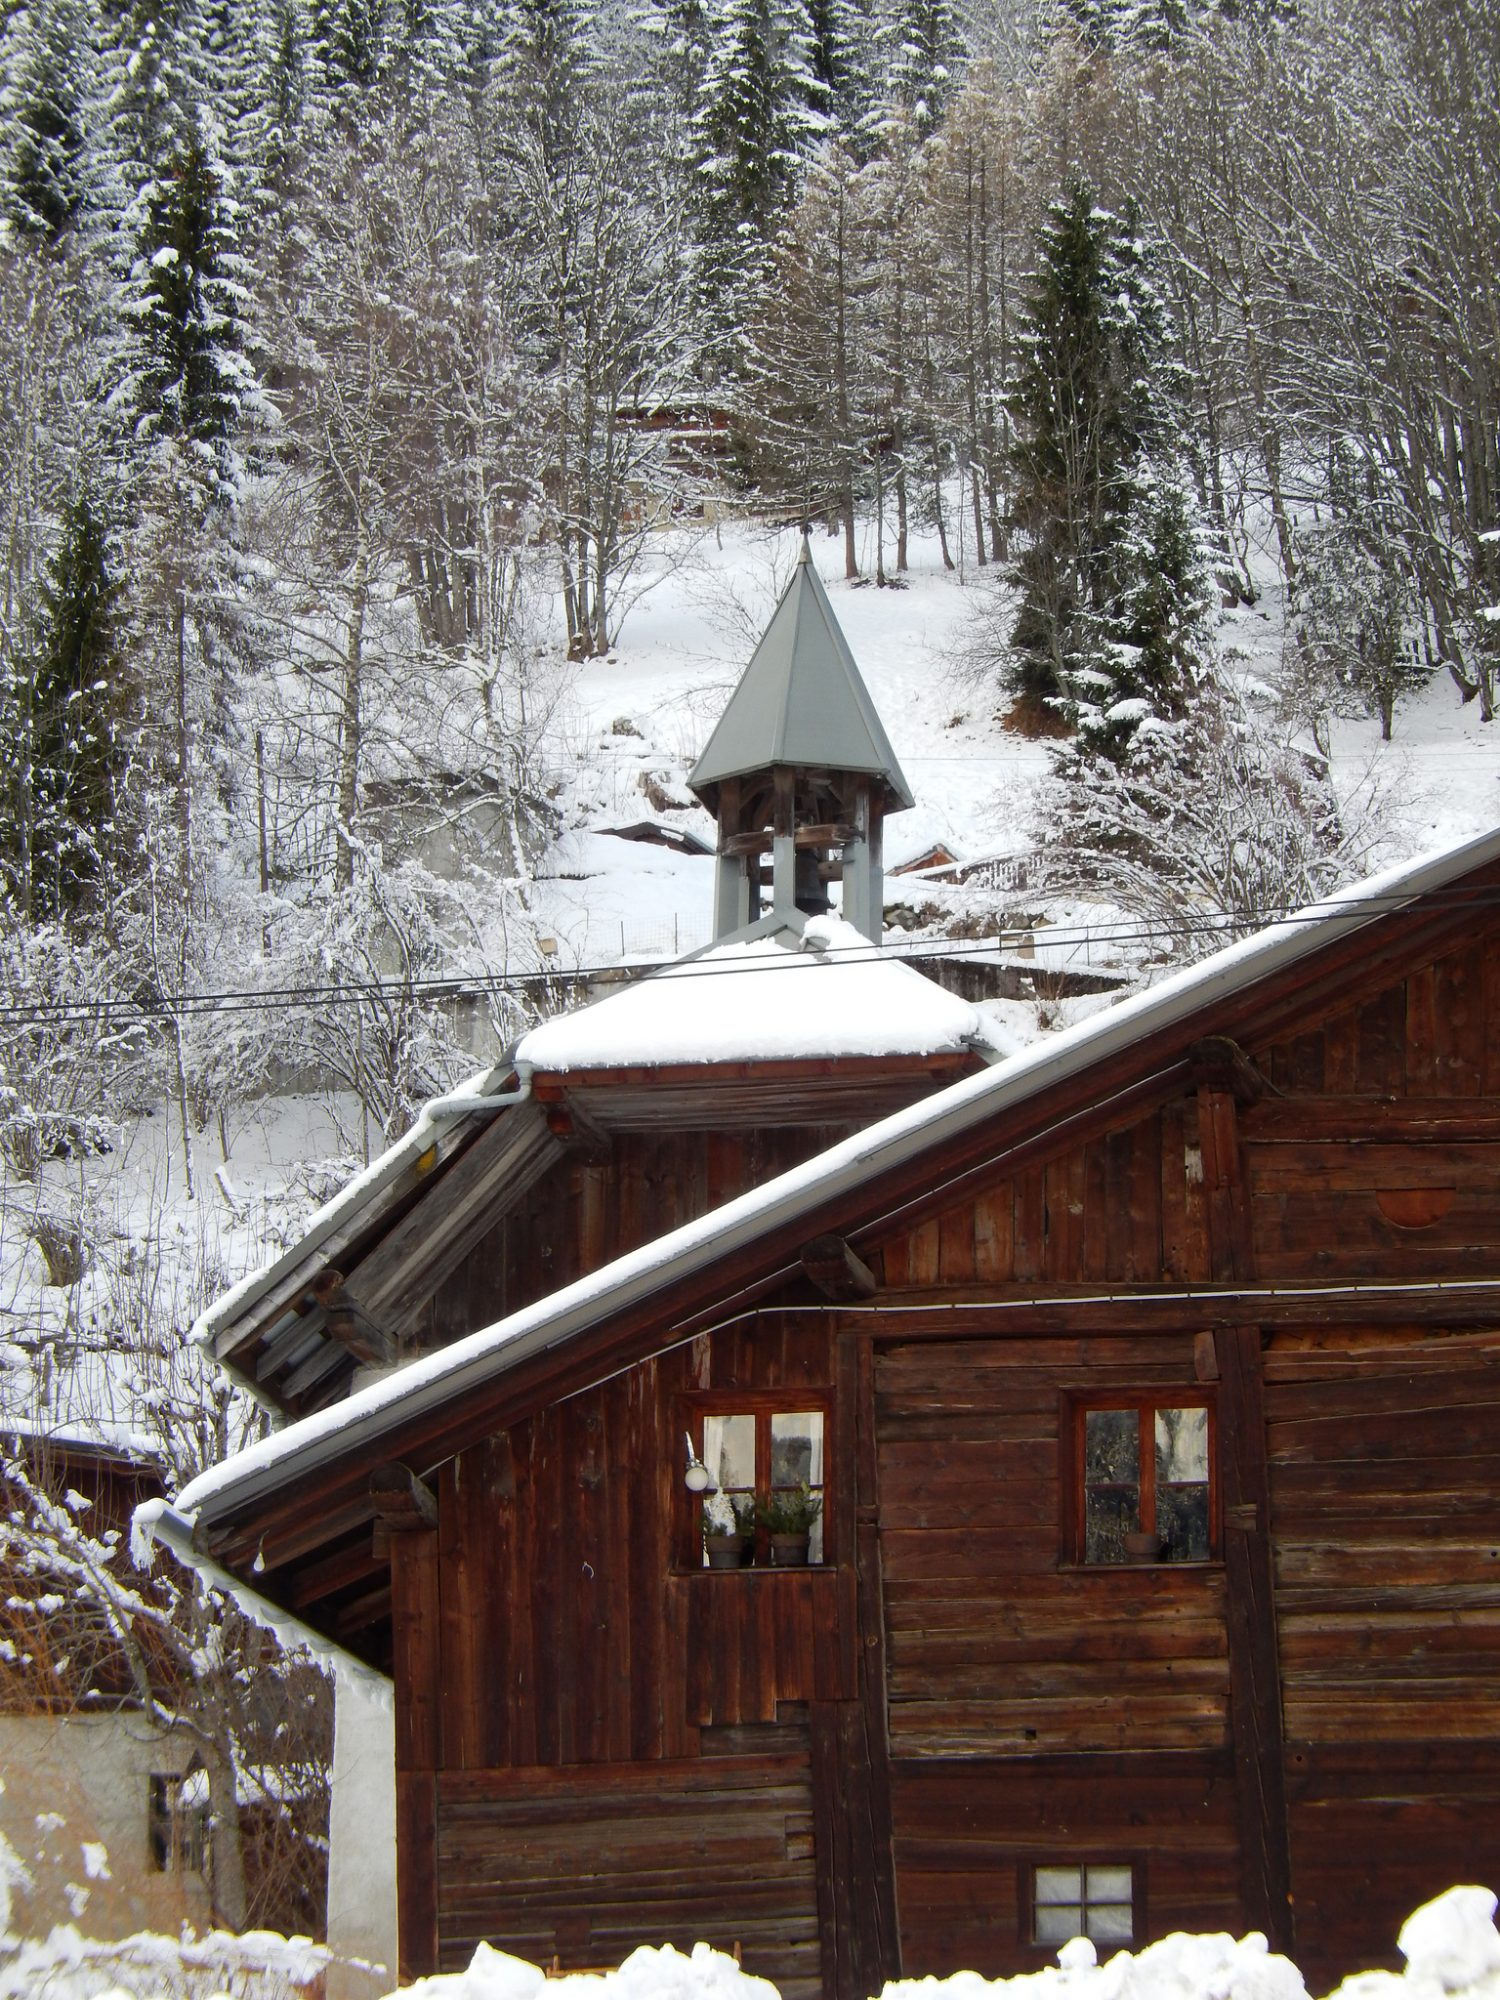 Image of a cabin in the Pyrenees